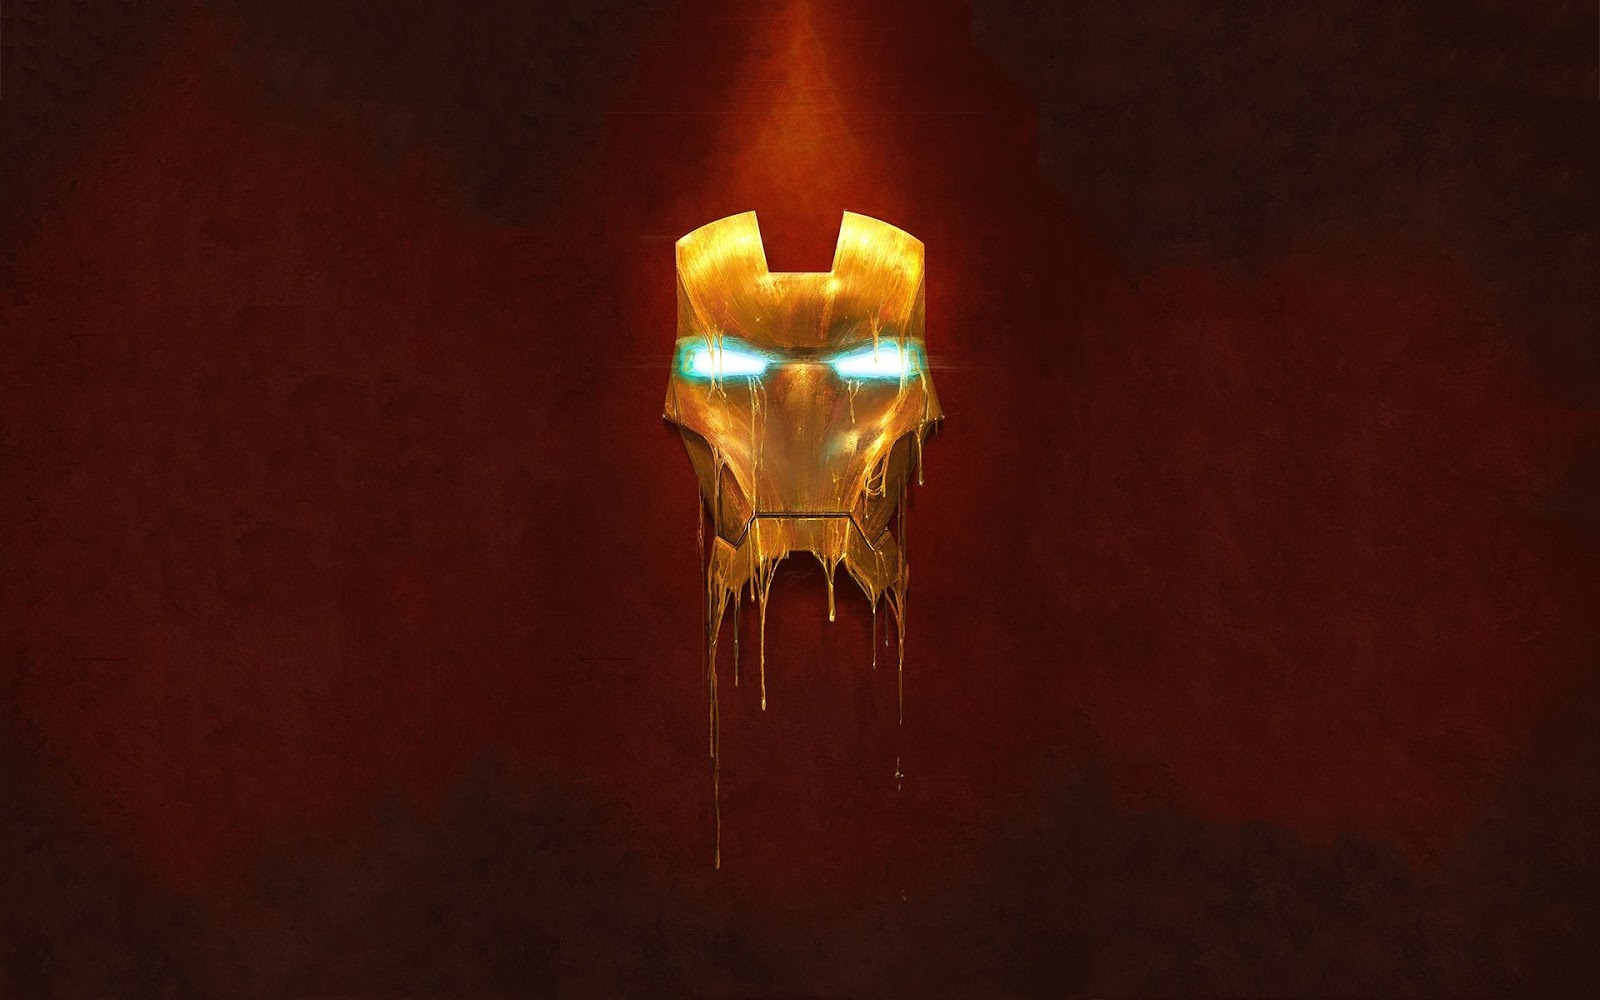 Wallpapers Android Iron Man latest Mask Background Wallpaper 1600x1000